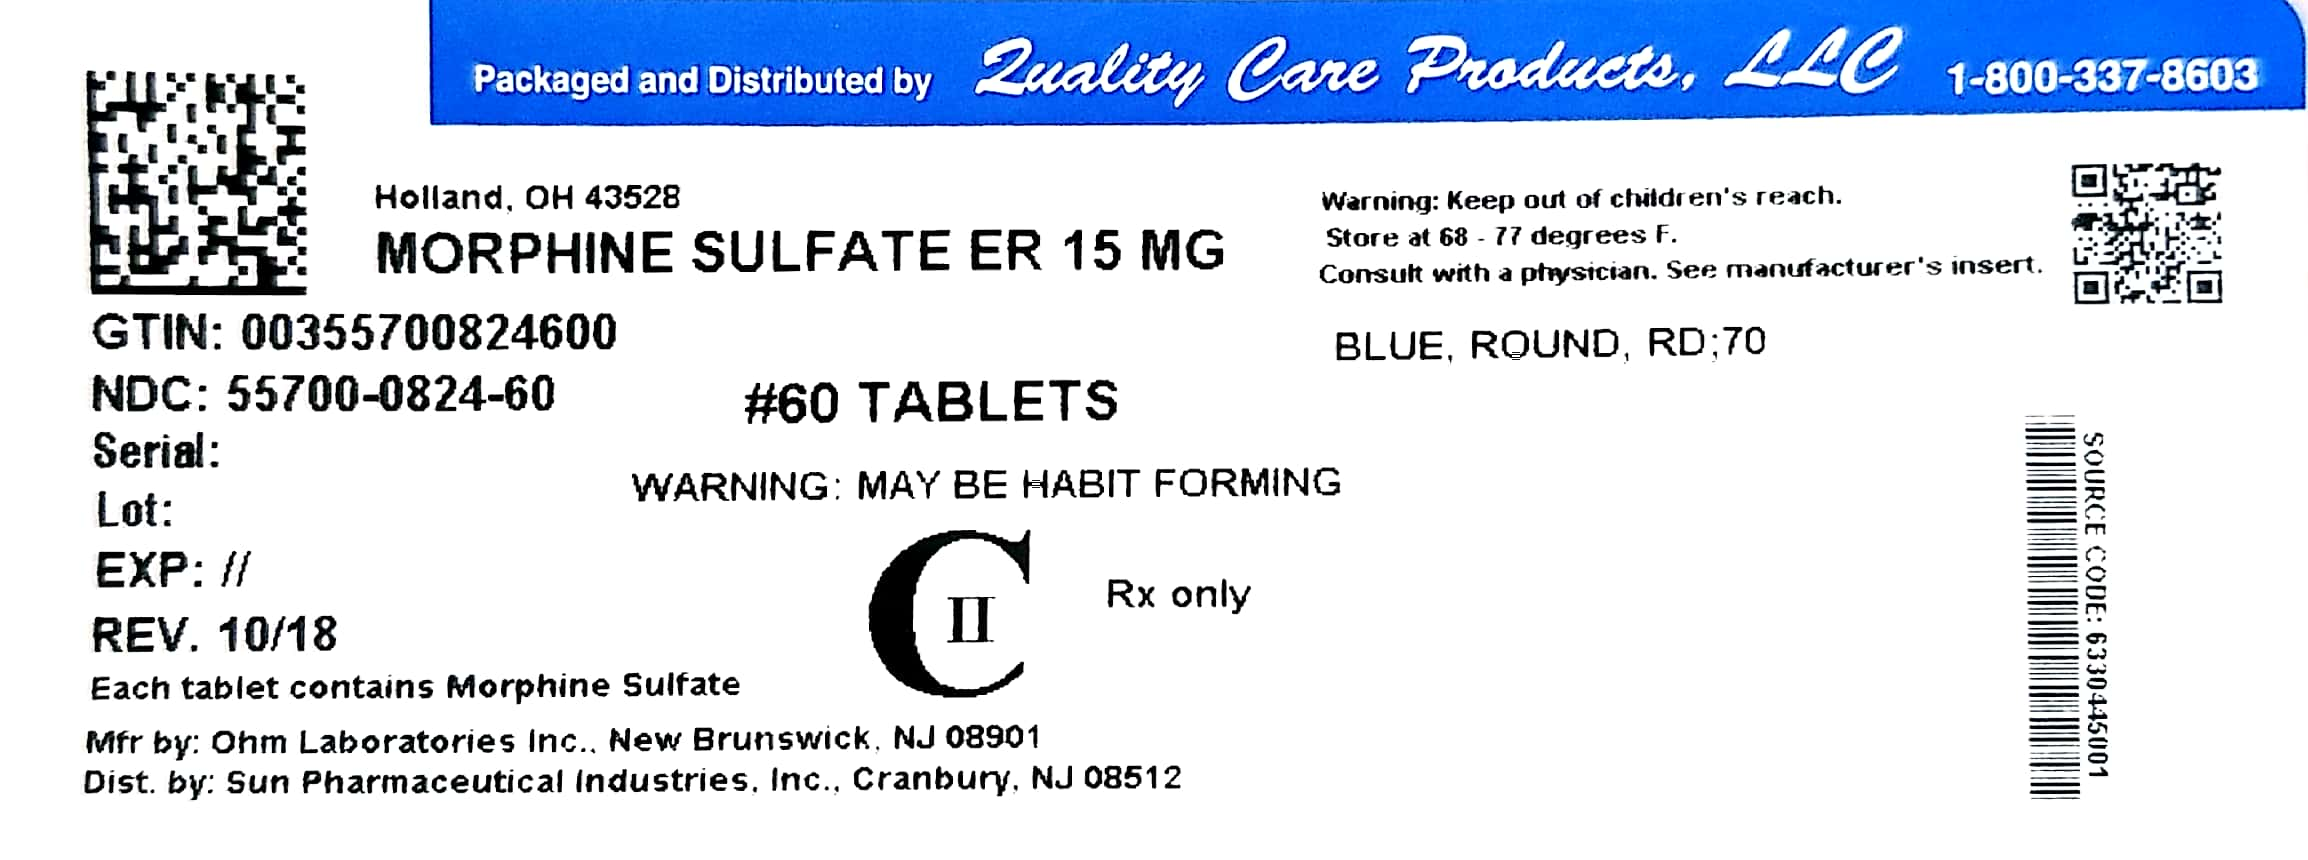 Package Photo